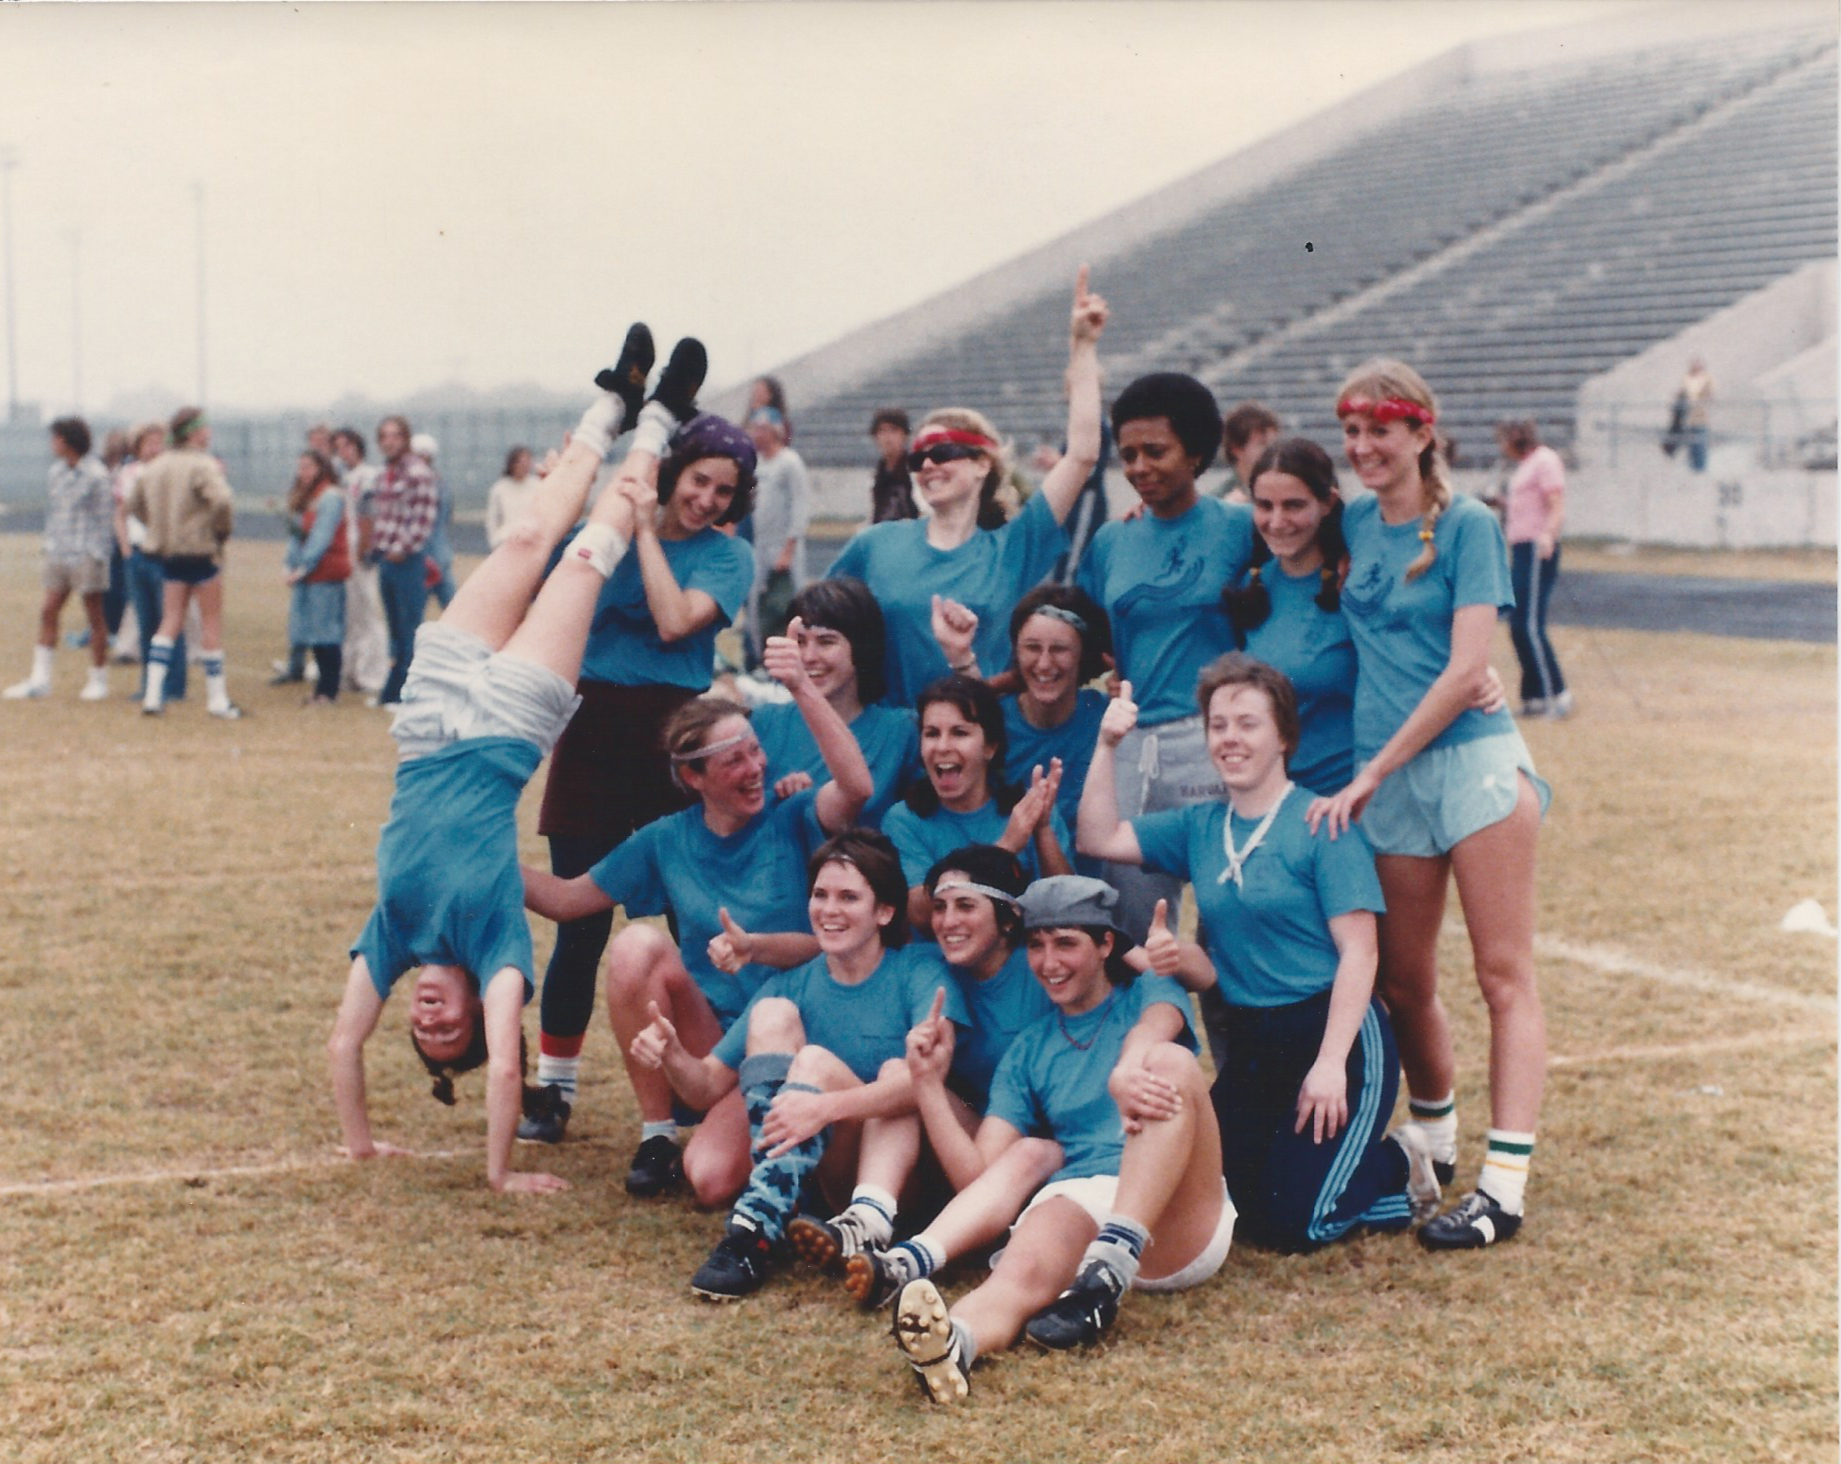 BLU (Boston Ladies Ultimate) winning National Championship in NOLA 1981